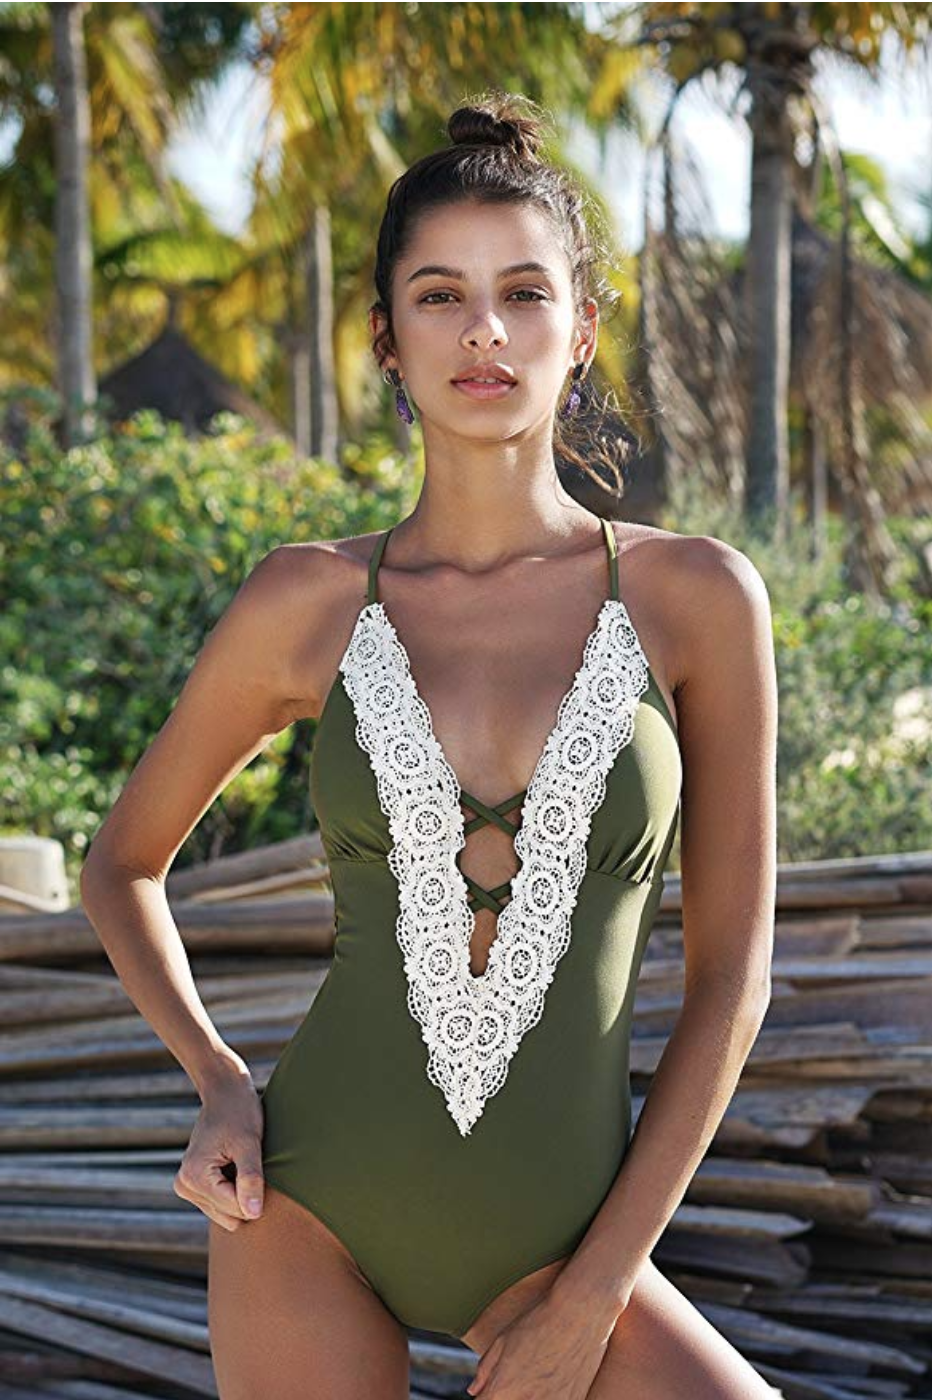 """<strong><em>Cupshe Vintage Lace Bathing Suit<br></em></strong><br>""""To say I love this suit is an understatement!!! It's amazing!!!!"""" declared a reviewer. (Exclamation points were <em>not</em> edited for clarity.) """"[It's] sexy, but not trashy,"""" said another. A chorus of over 1,000 customers praised the flattering, tummy-controlling properties of this bohemian maillot. At less than $30, we're sold.<br><br><strong>Cupshe</strong> Vintage Lace Bathing Suit, $, available at <a href=""""https://www.amazon.com/CUPSHE-Womens-Vintage-Swimwear-Bathing/dp/B073B3935Q/ref=sr_1_4?"""" rel=""""nofollow noopener"""" target=""""_blank"""" data-ylk=""""slk:Amazon"""" class=""""link rapid-noclick-resp"""">Amazon</a>"""